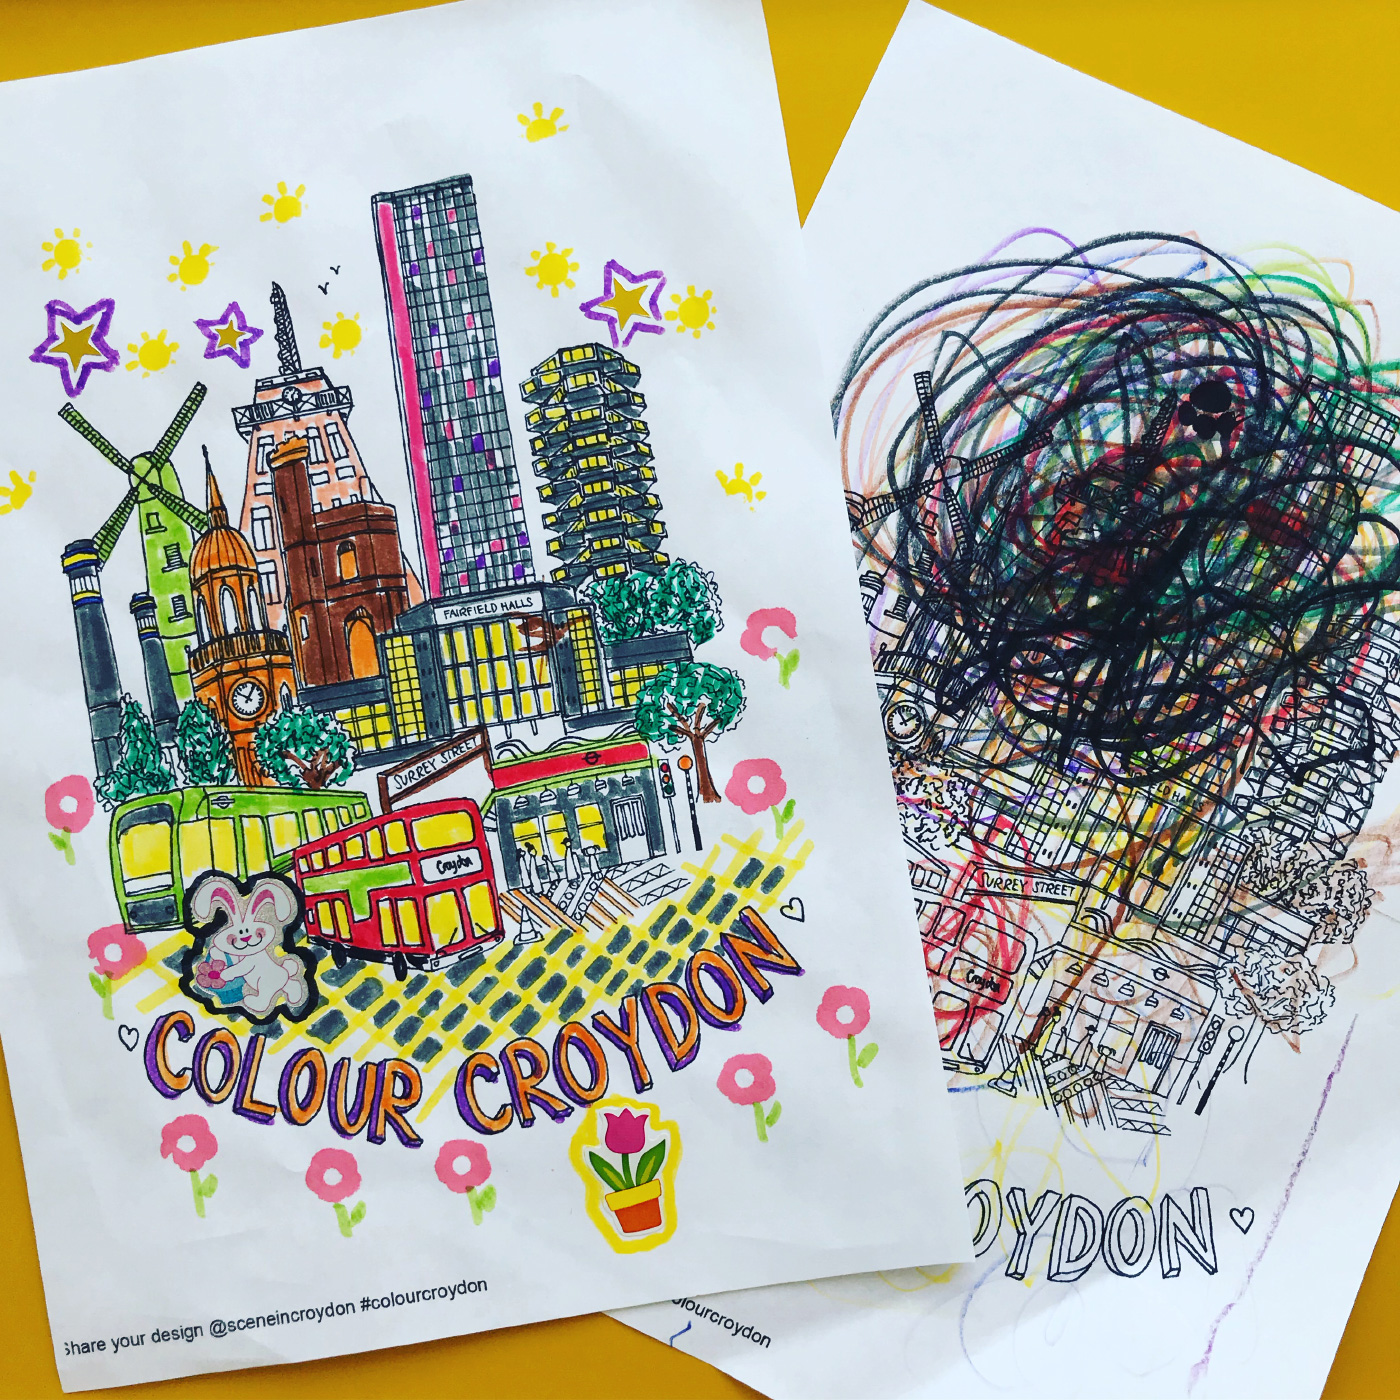 Colour in Croydon Competition